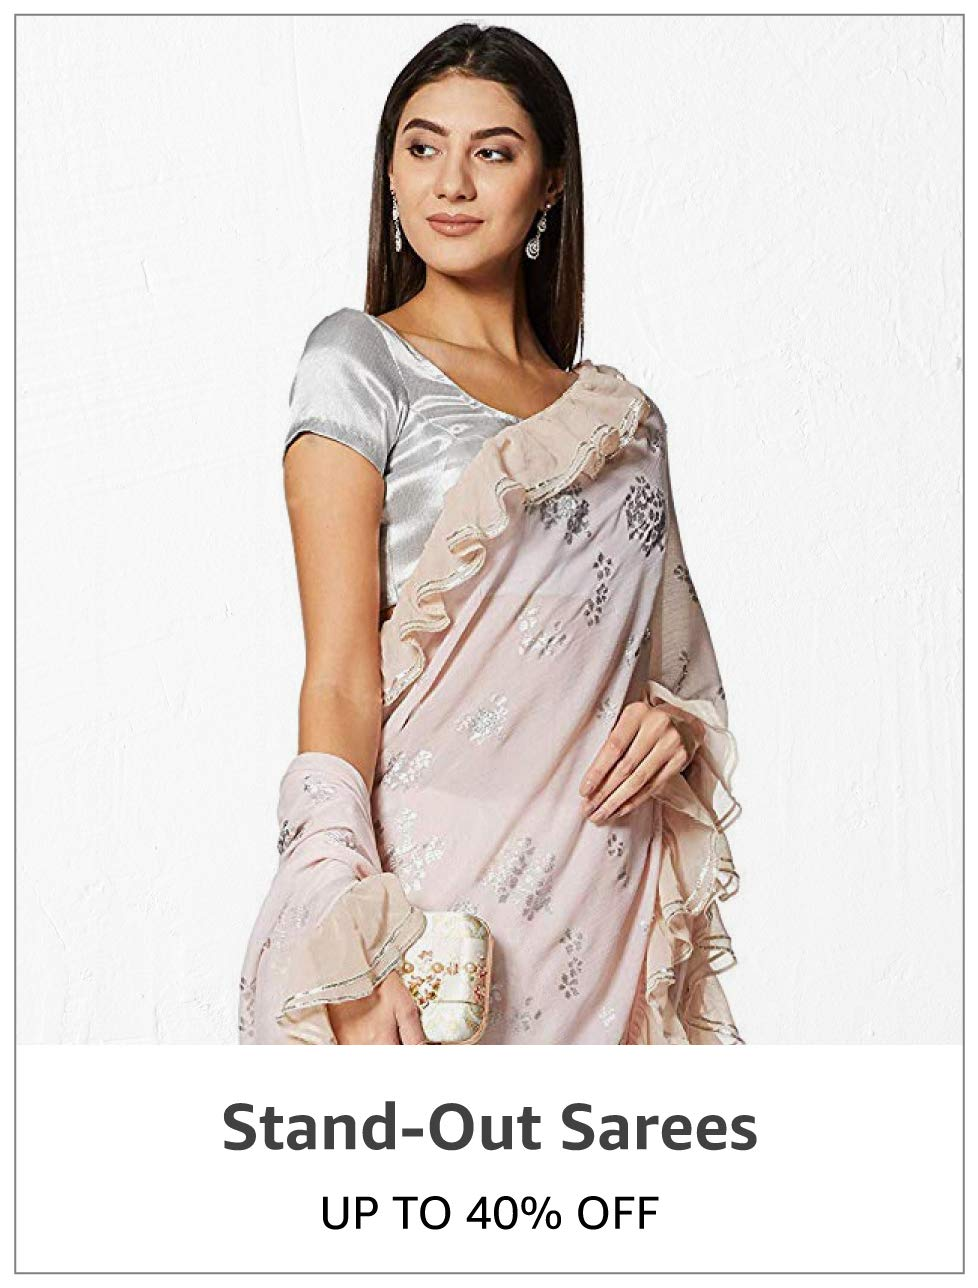 Stand-out Sarees: Upto 40% Off